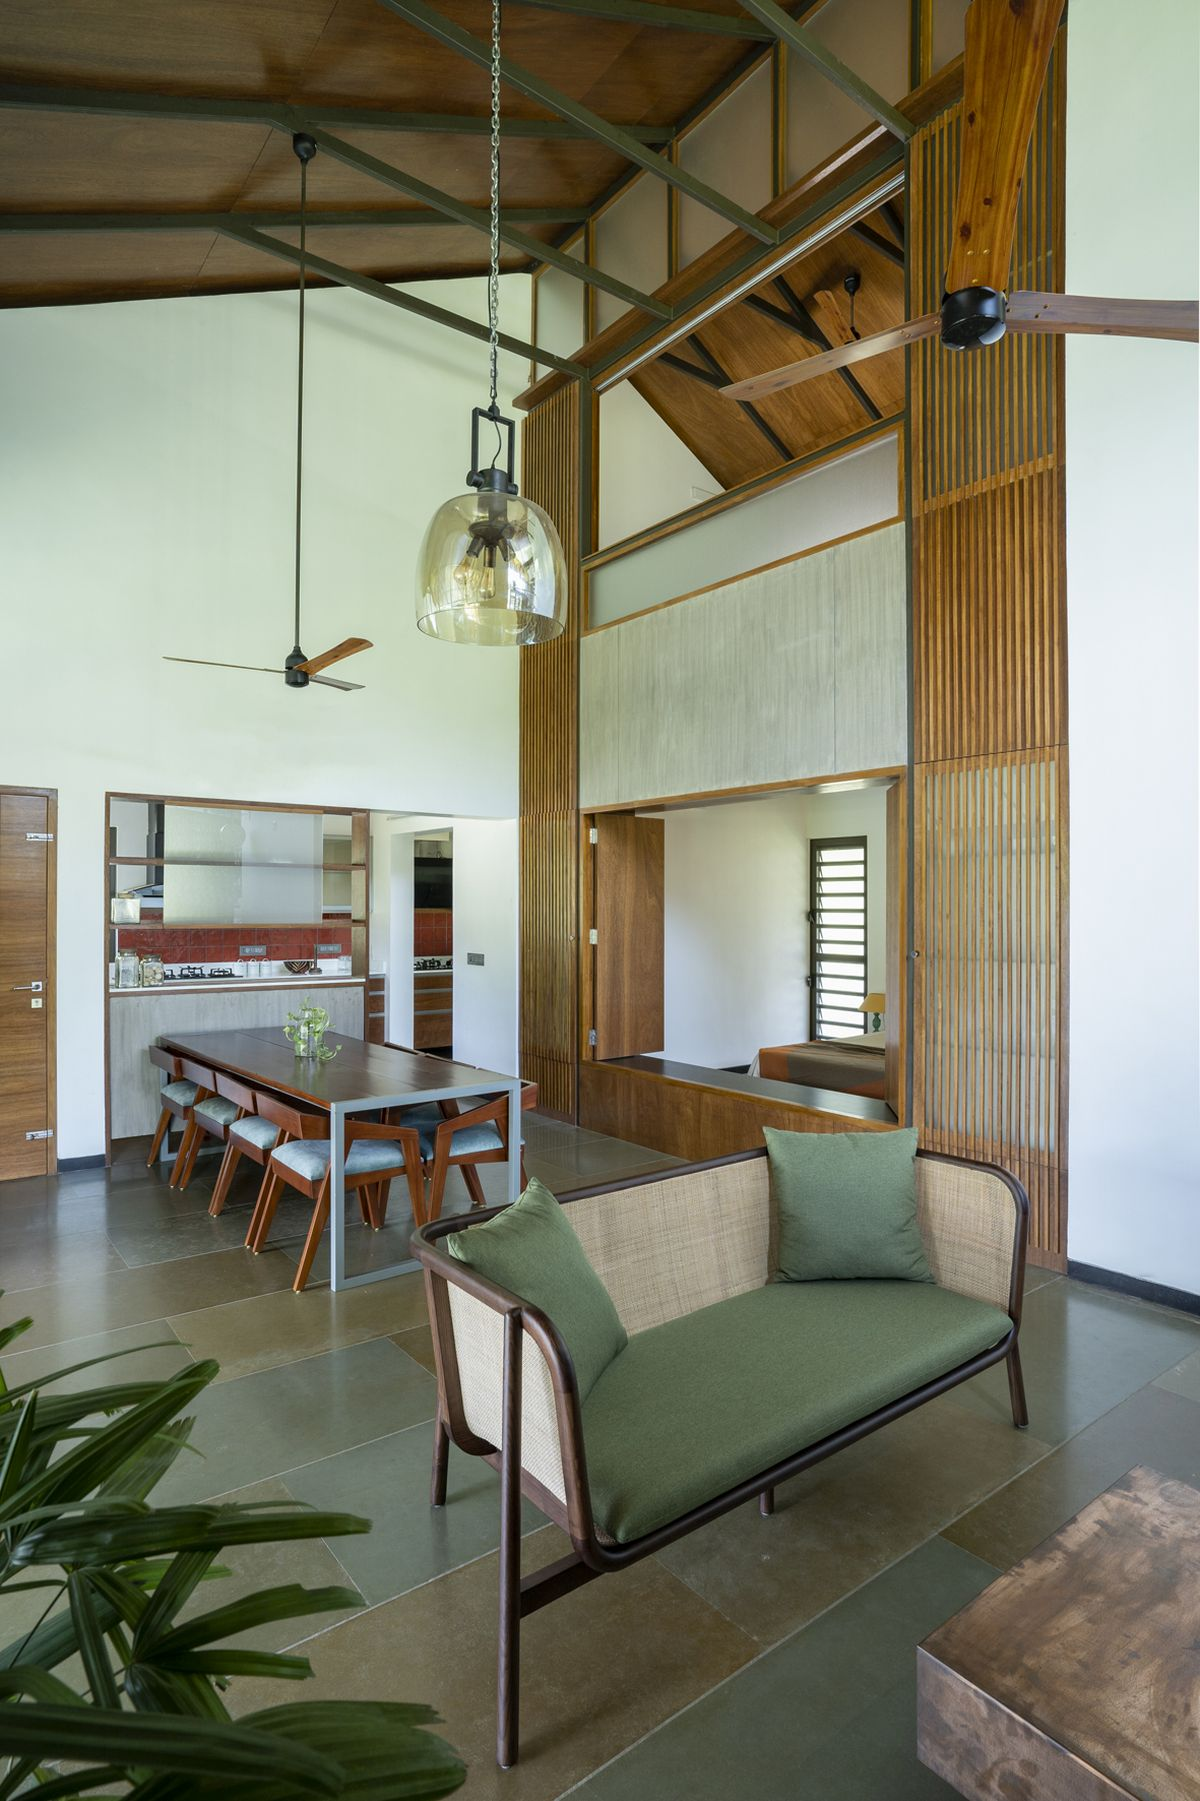 Dr Maani House 2020, at Koothattukulam, by RGB Architecture Studio 6